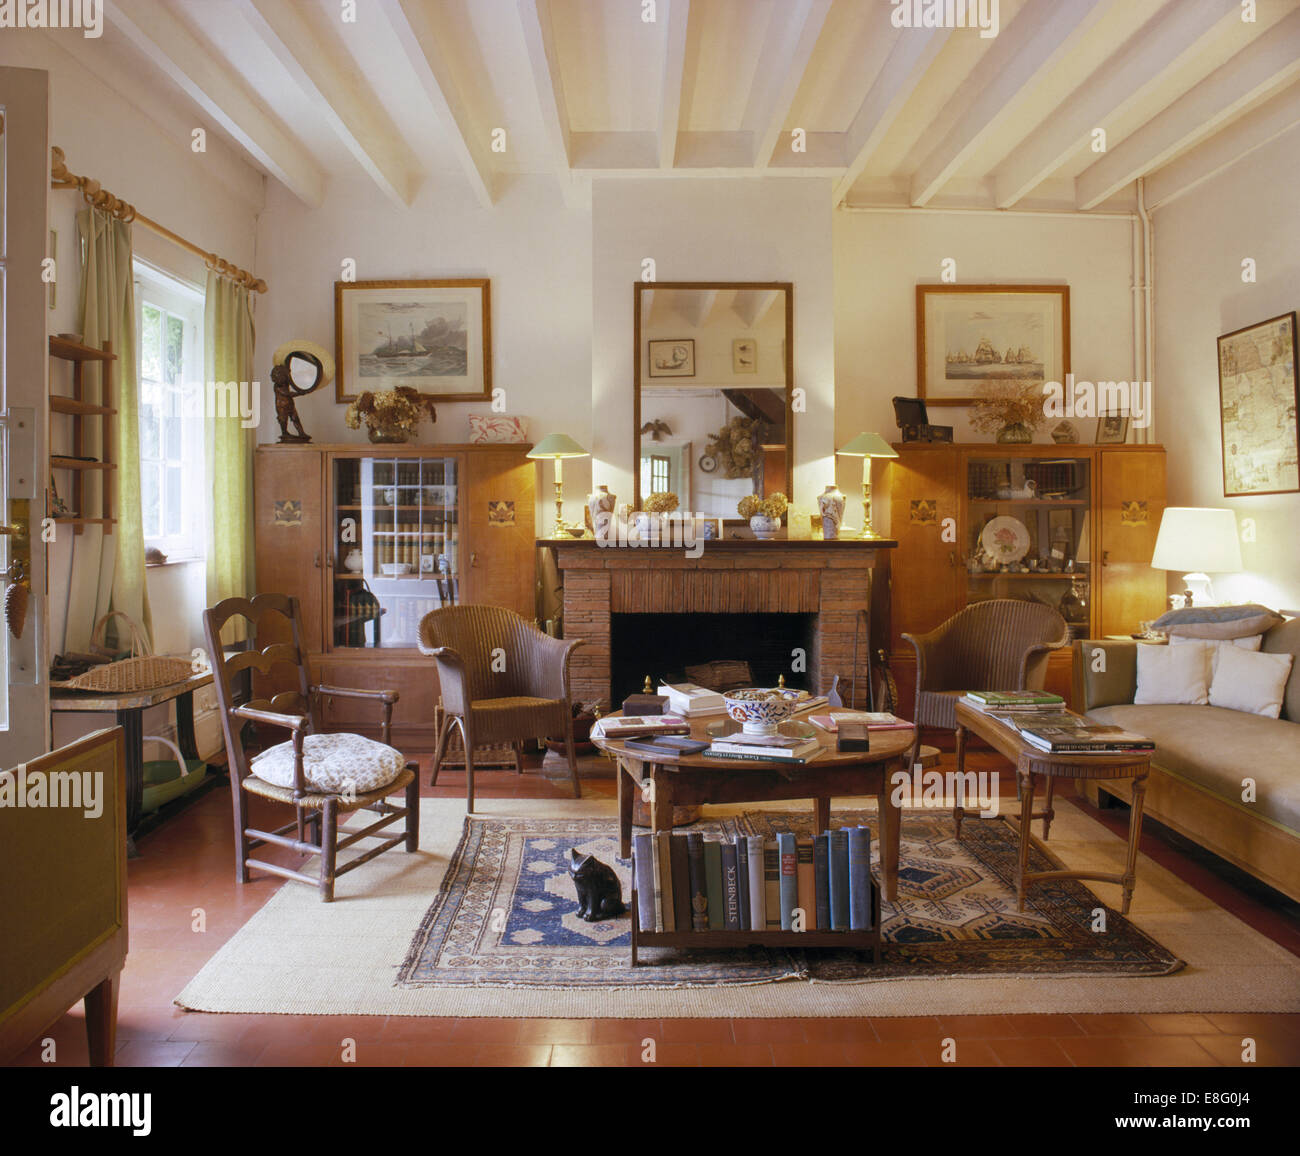 pictures of country living rooms build in shelves room lloyd loom chairs and comfortable sofa french with white painted ceiling beams